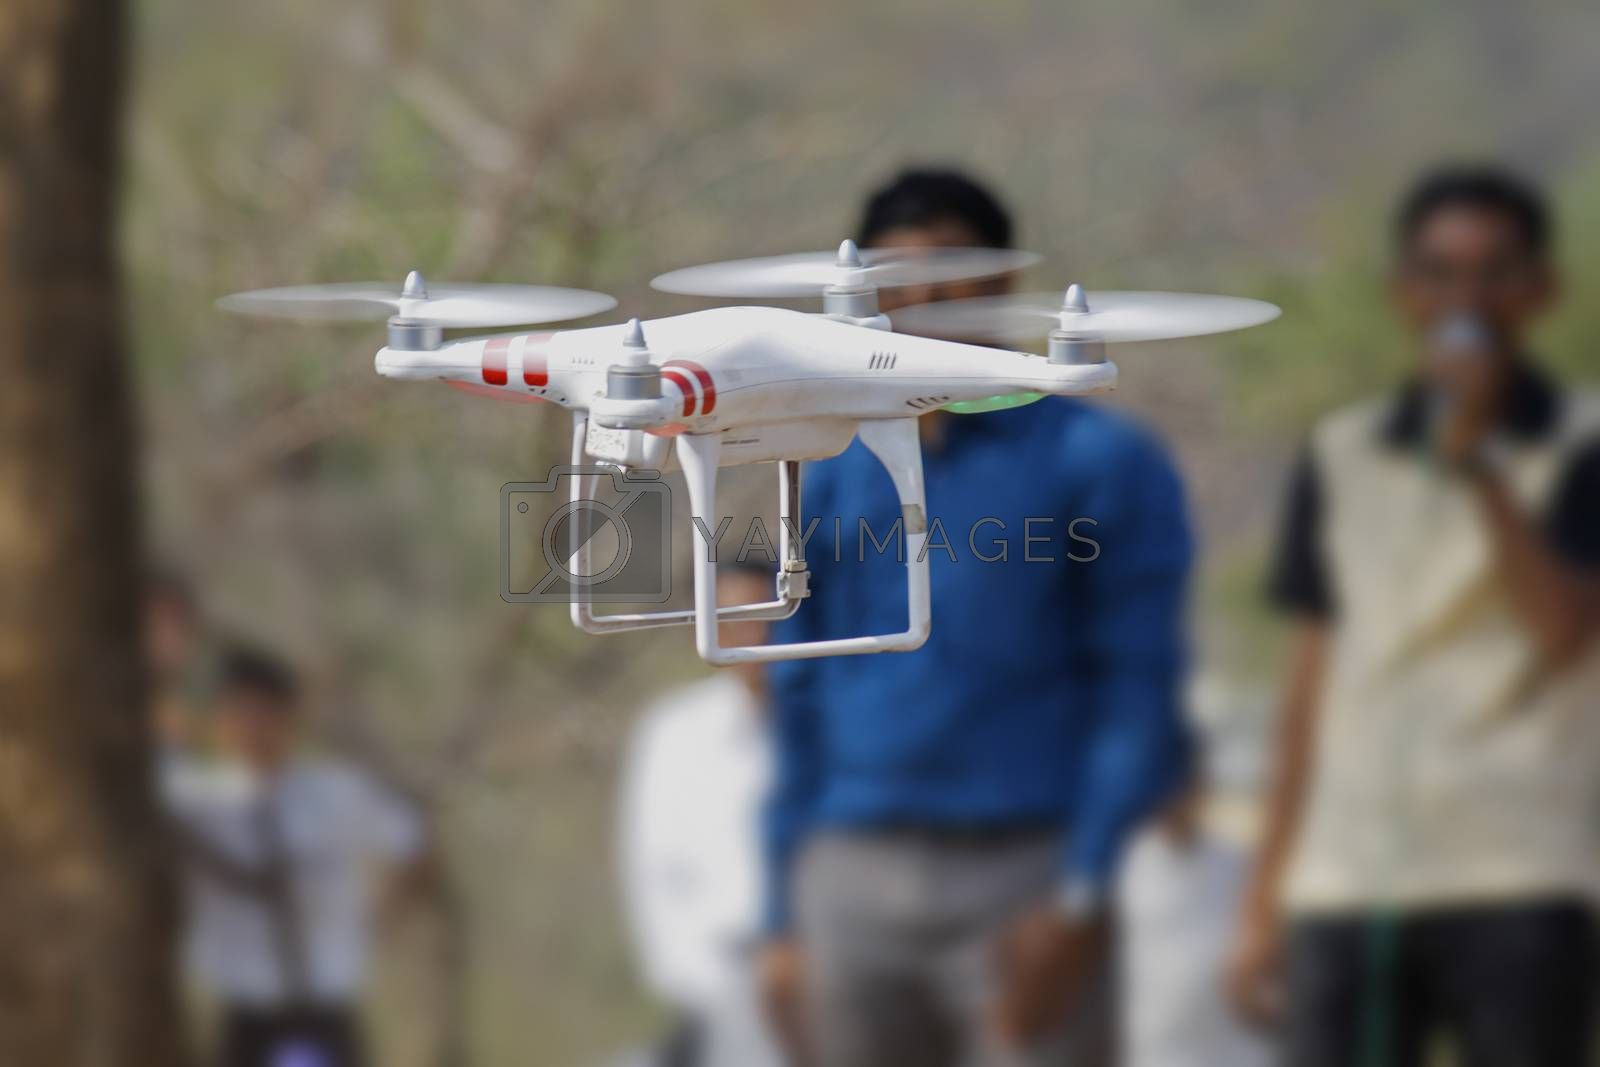 Royalty free image of drone helicopter by yands